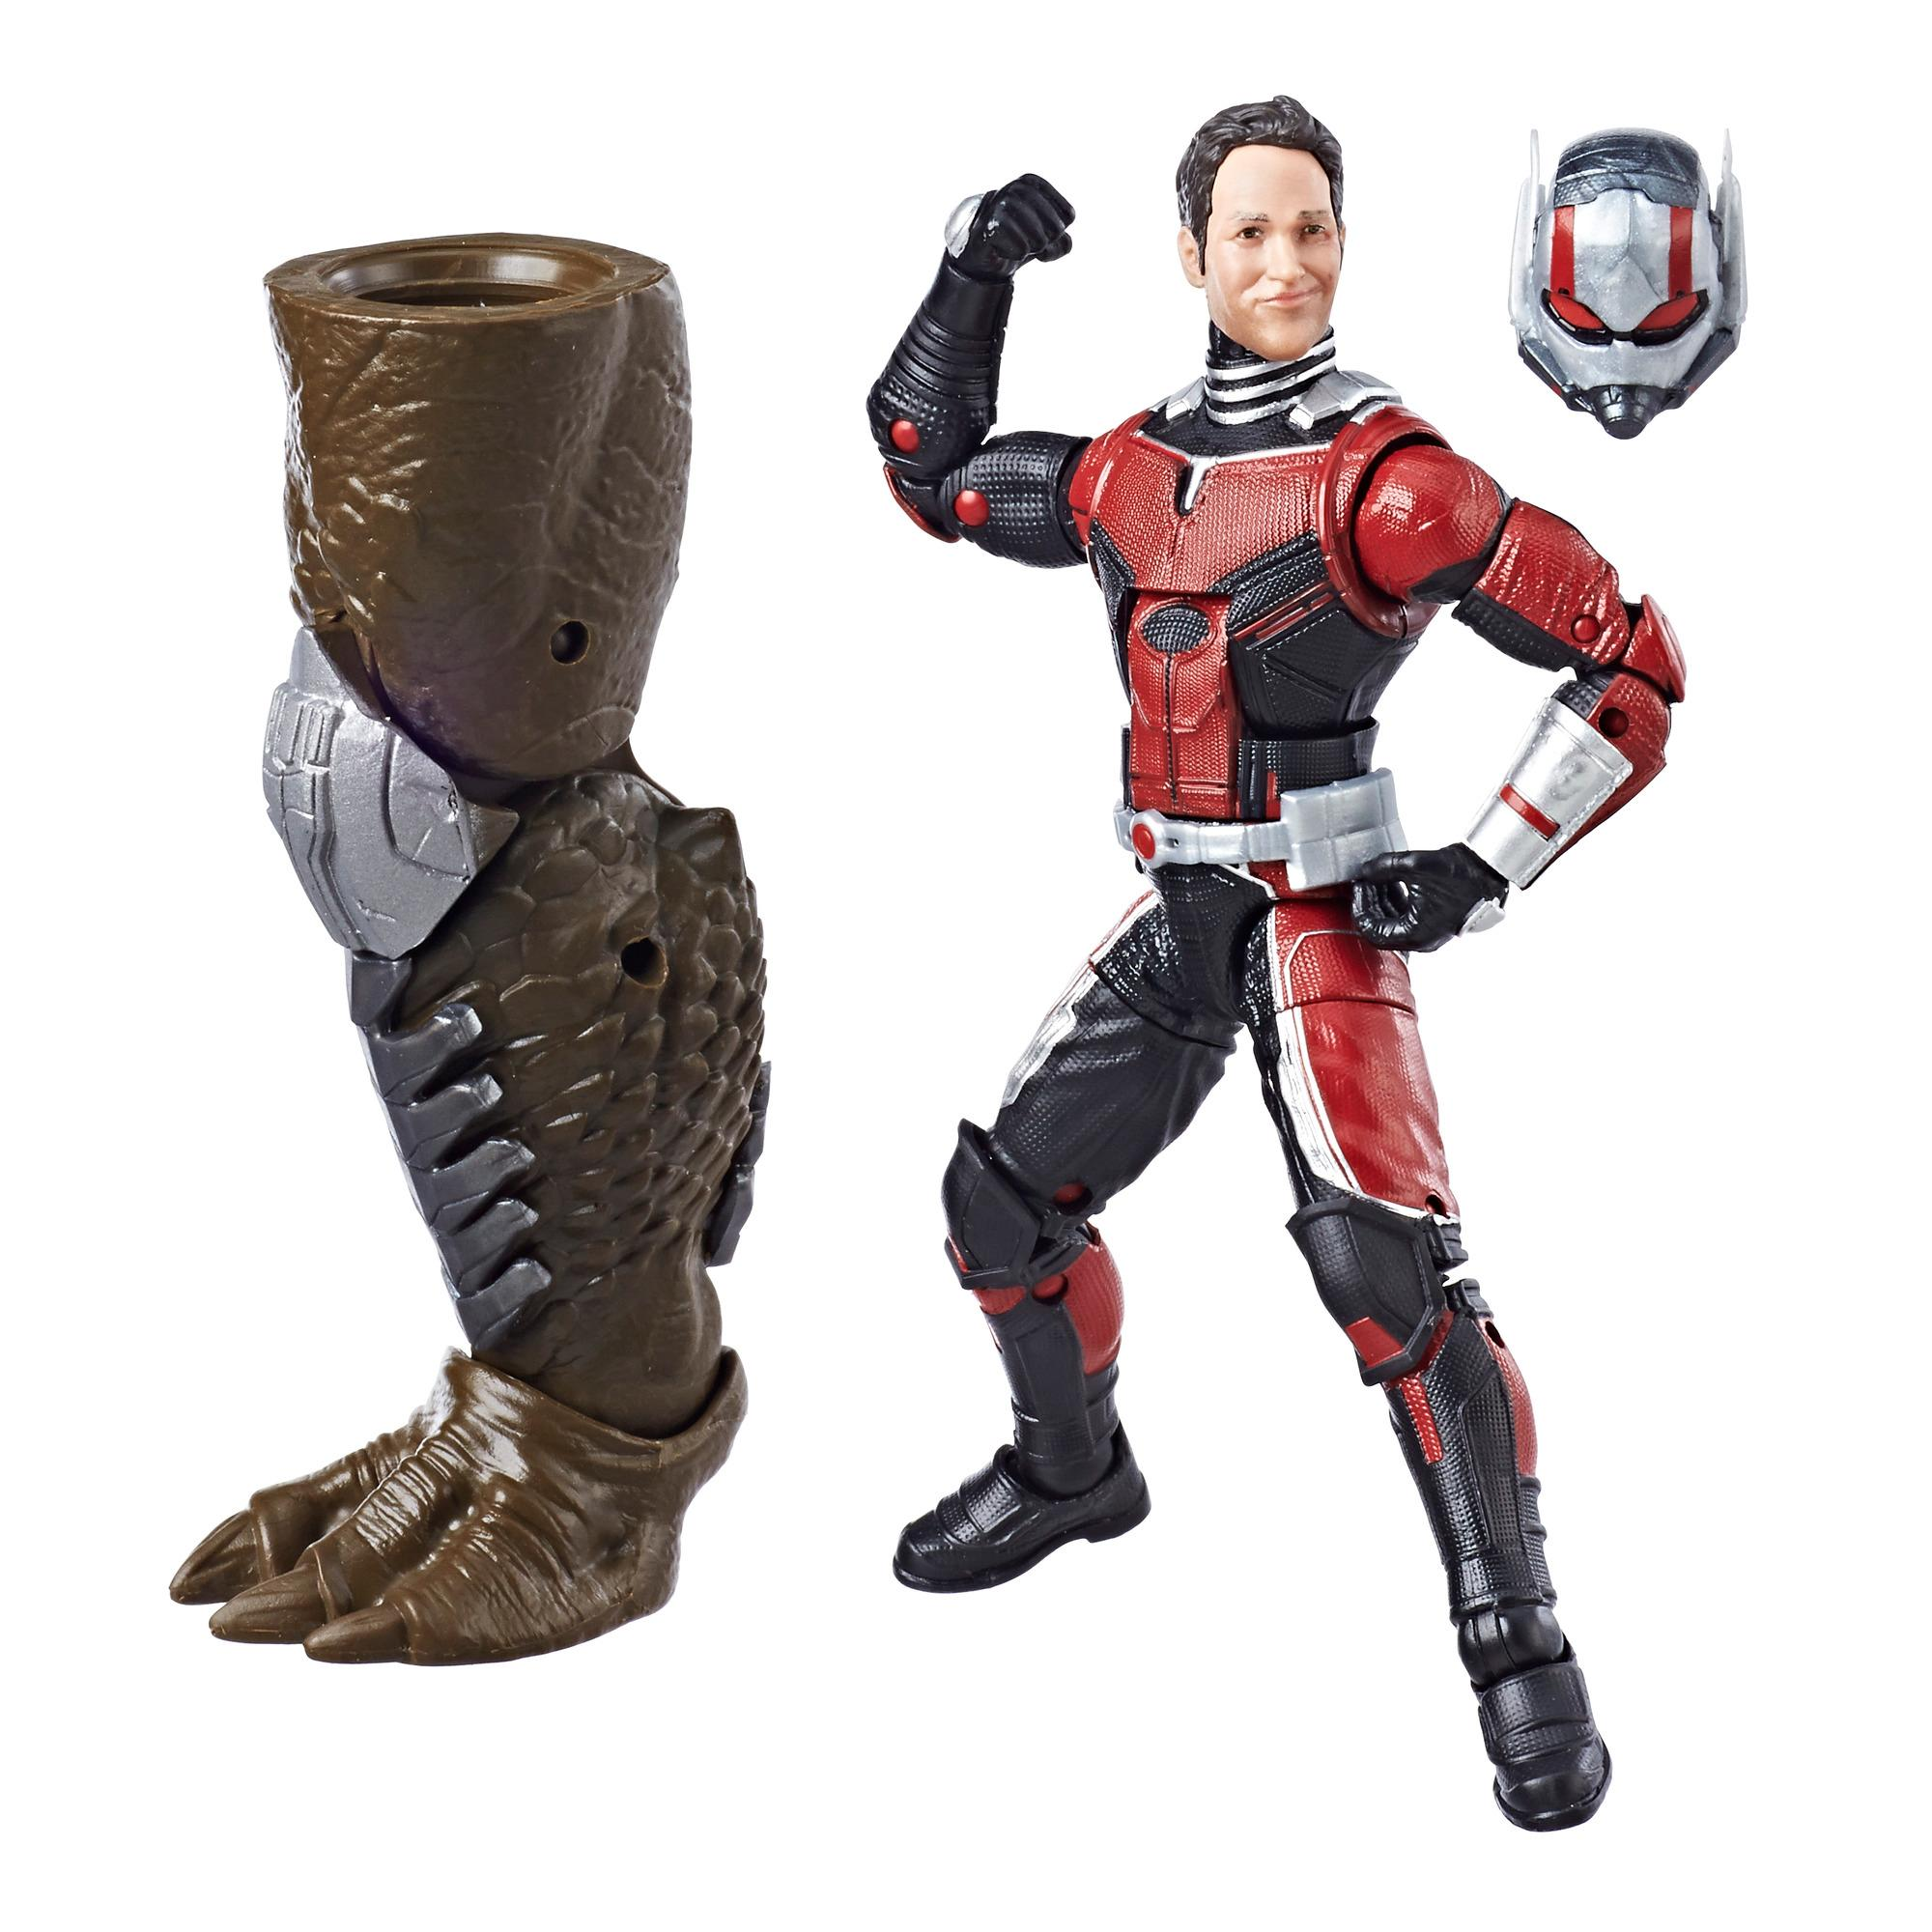 Avengers Marvel Legends Series 6-inch Ant-Man